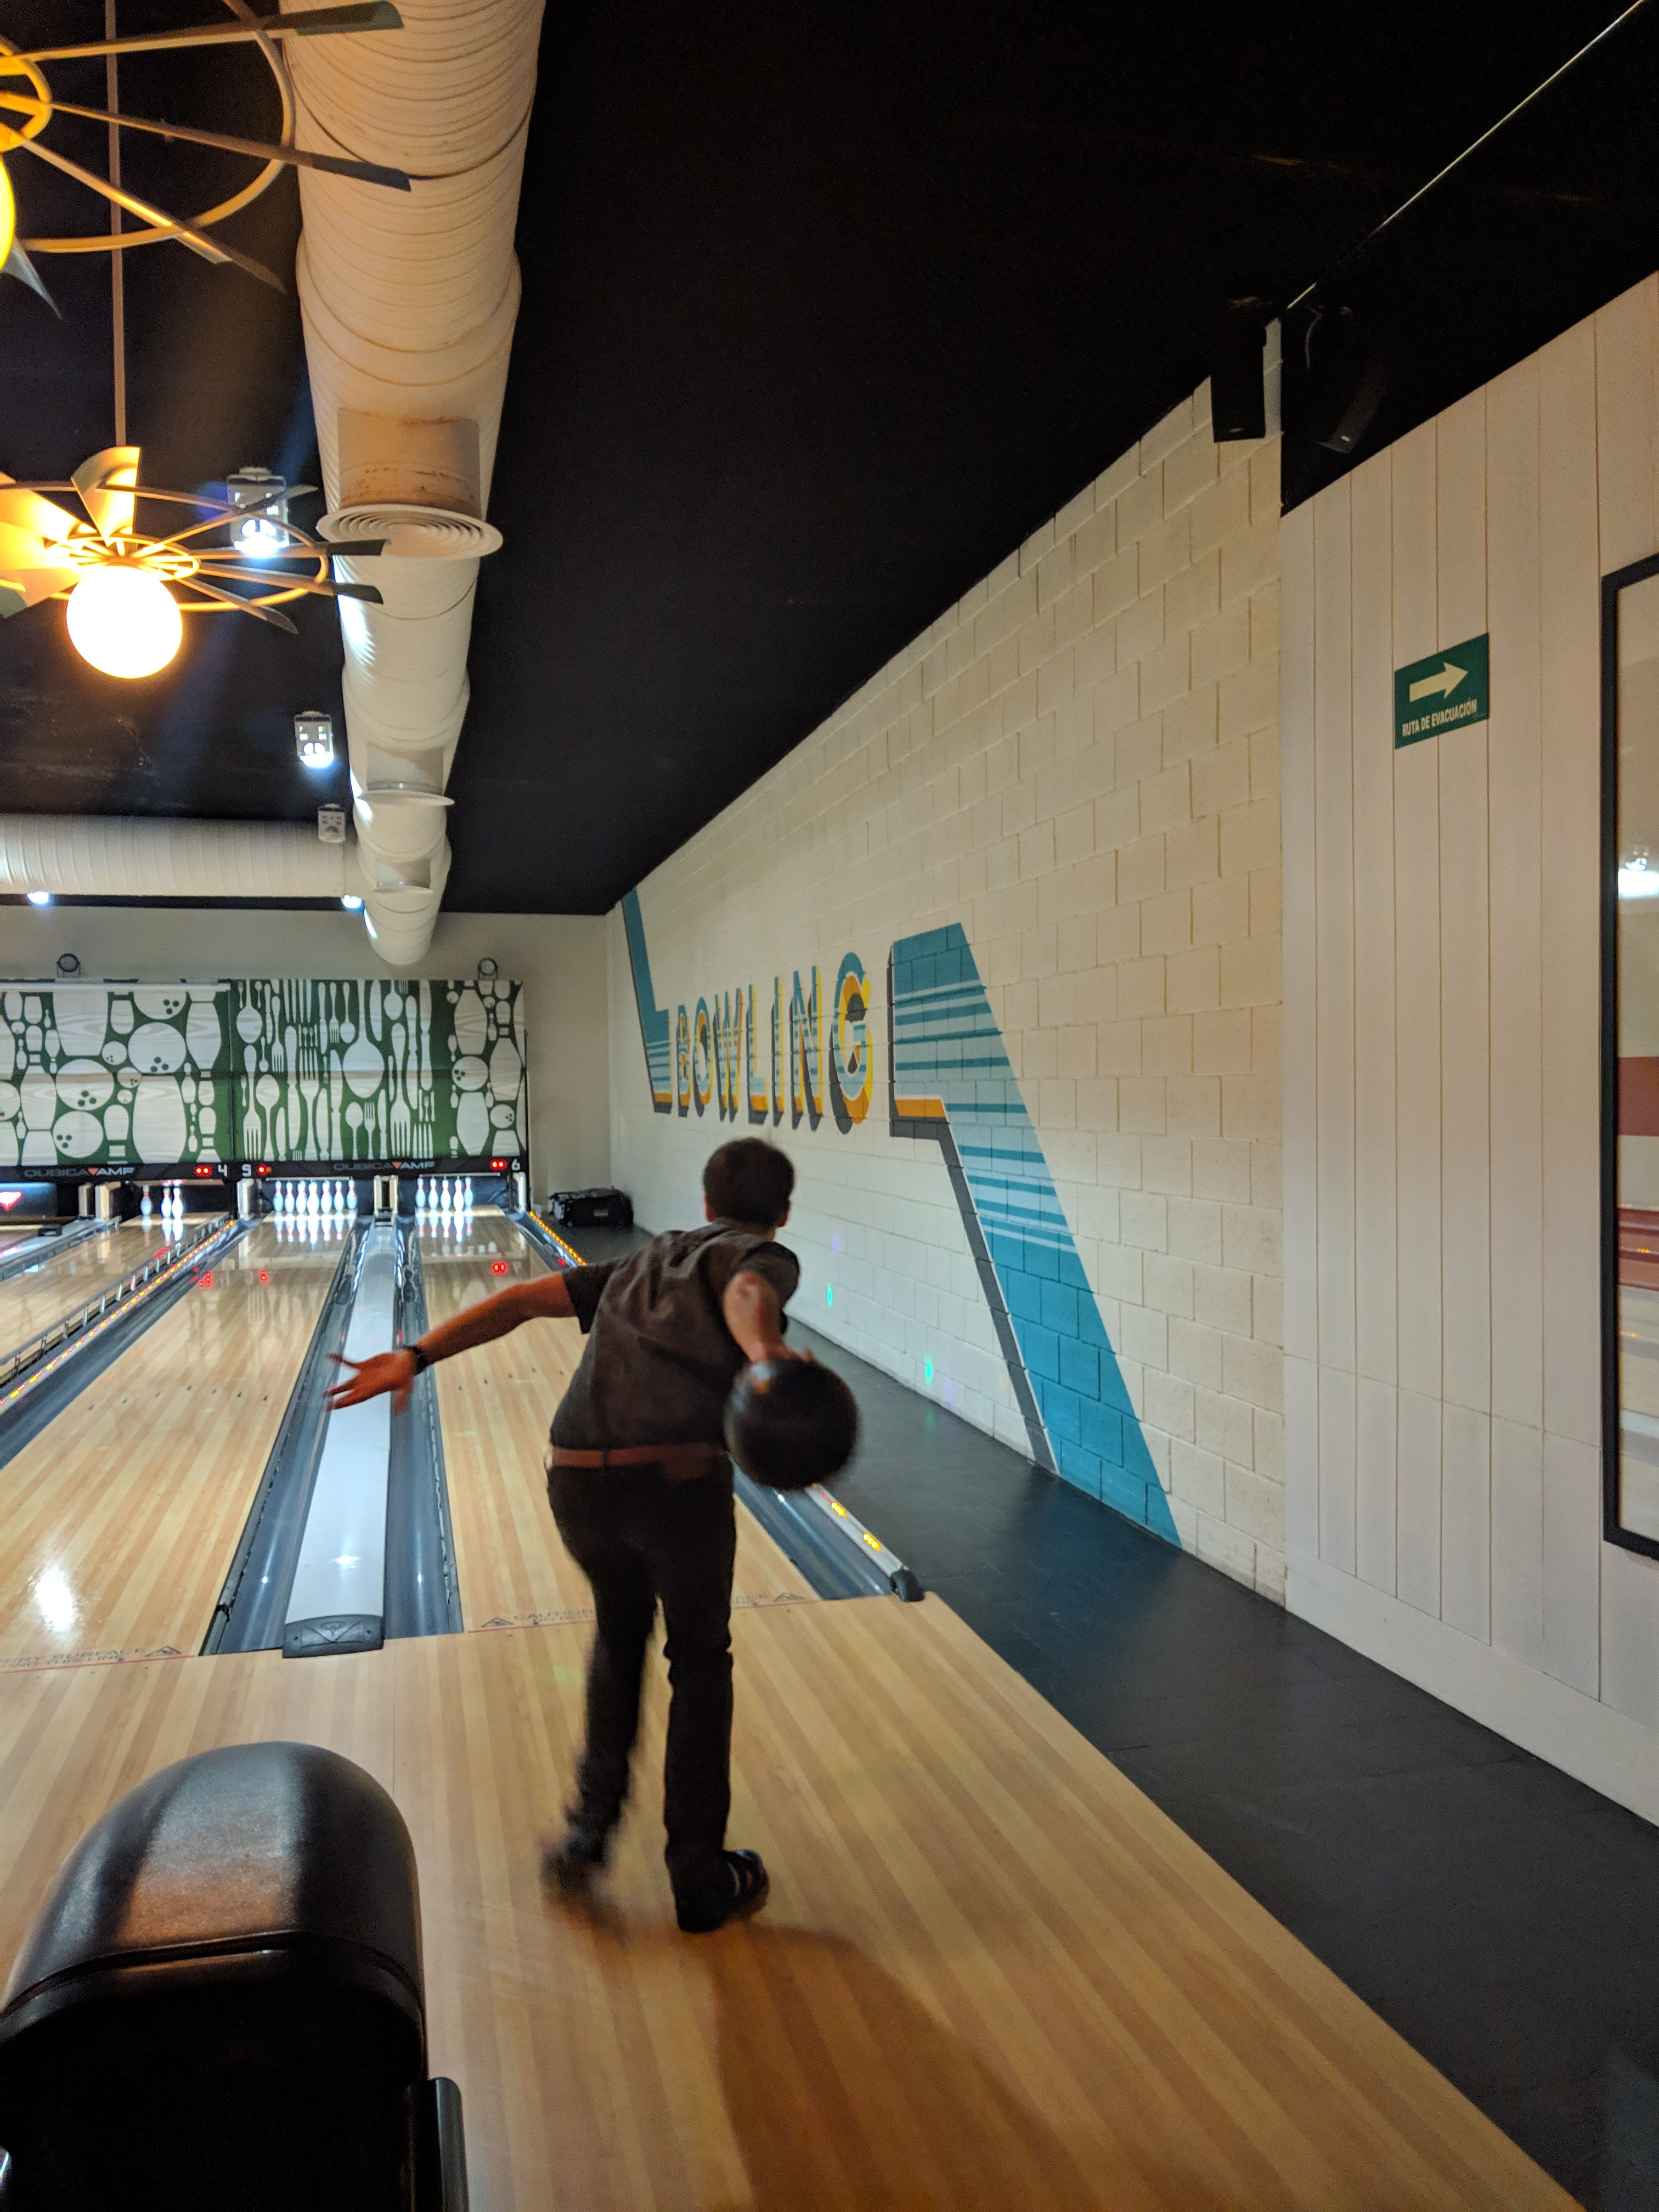 The bowling alley at Ocean Riviera Paradise was fabulous!